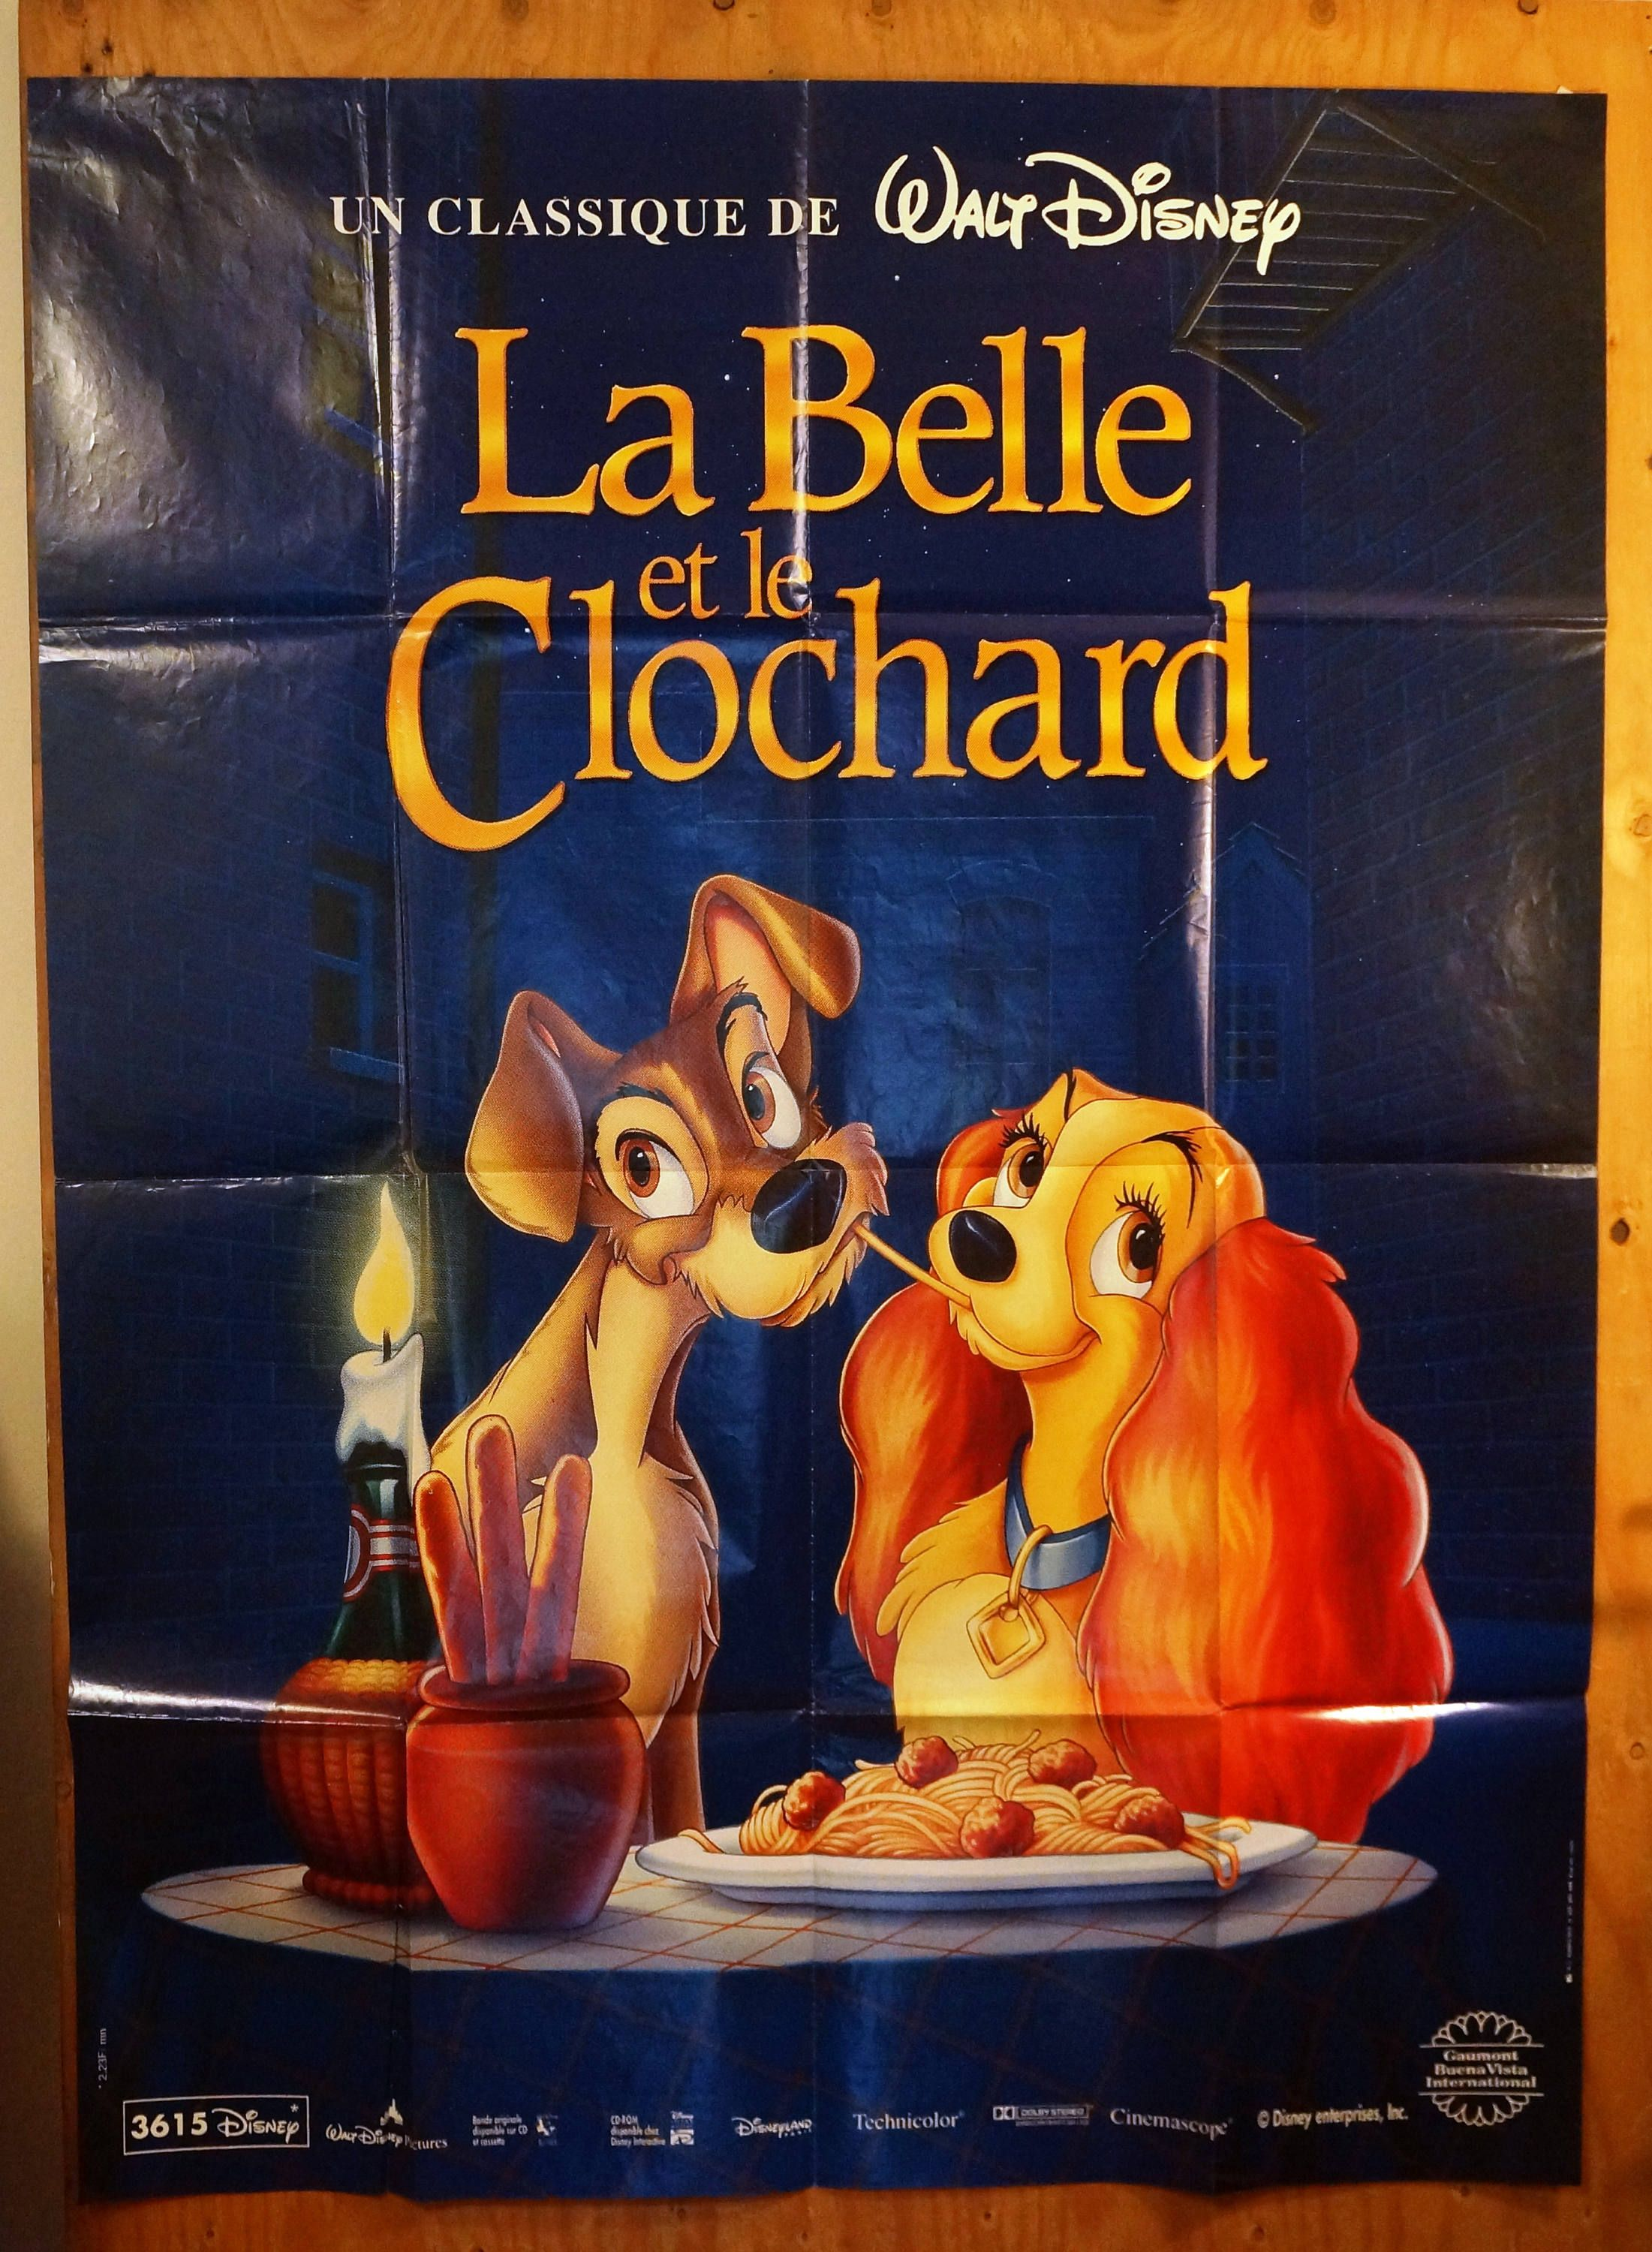 Lady And The Tramp French Subway Movie Poster La Belle Et Le Clochard Lady And The Tramp Disne Lady And The Tramp Movie Posters Subway Poster